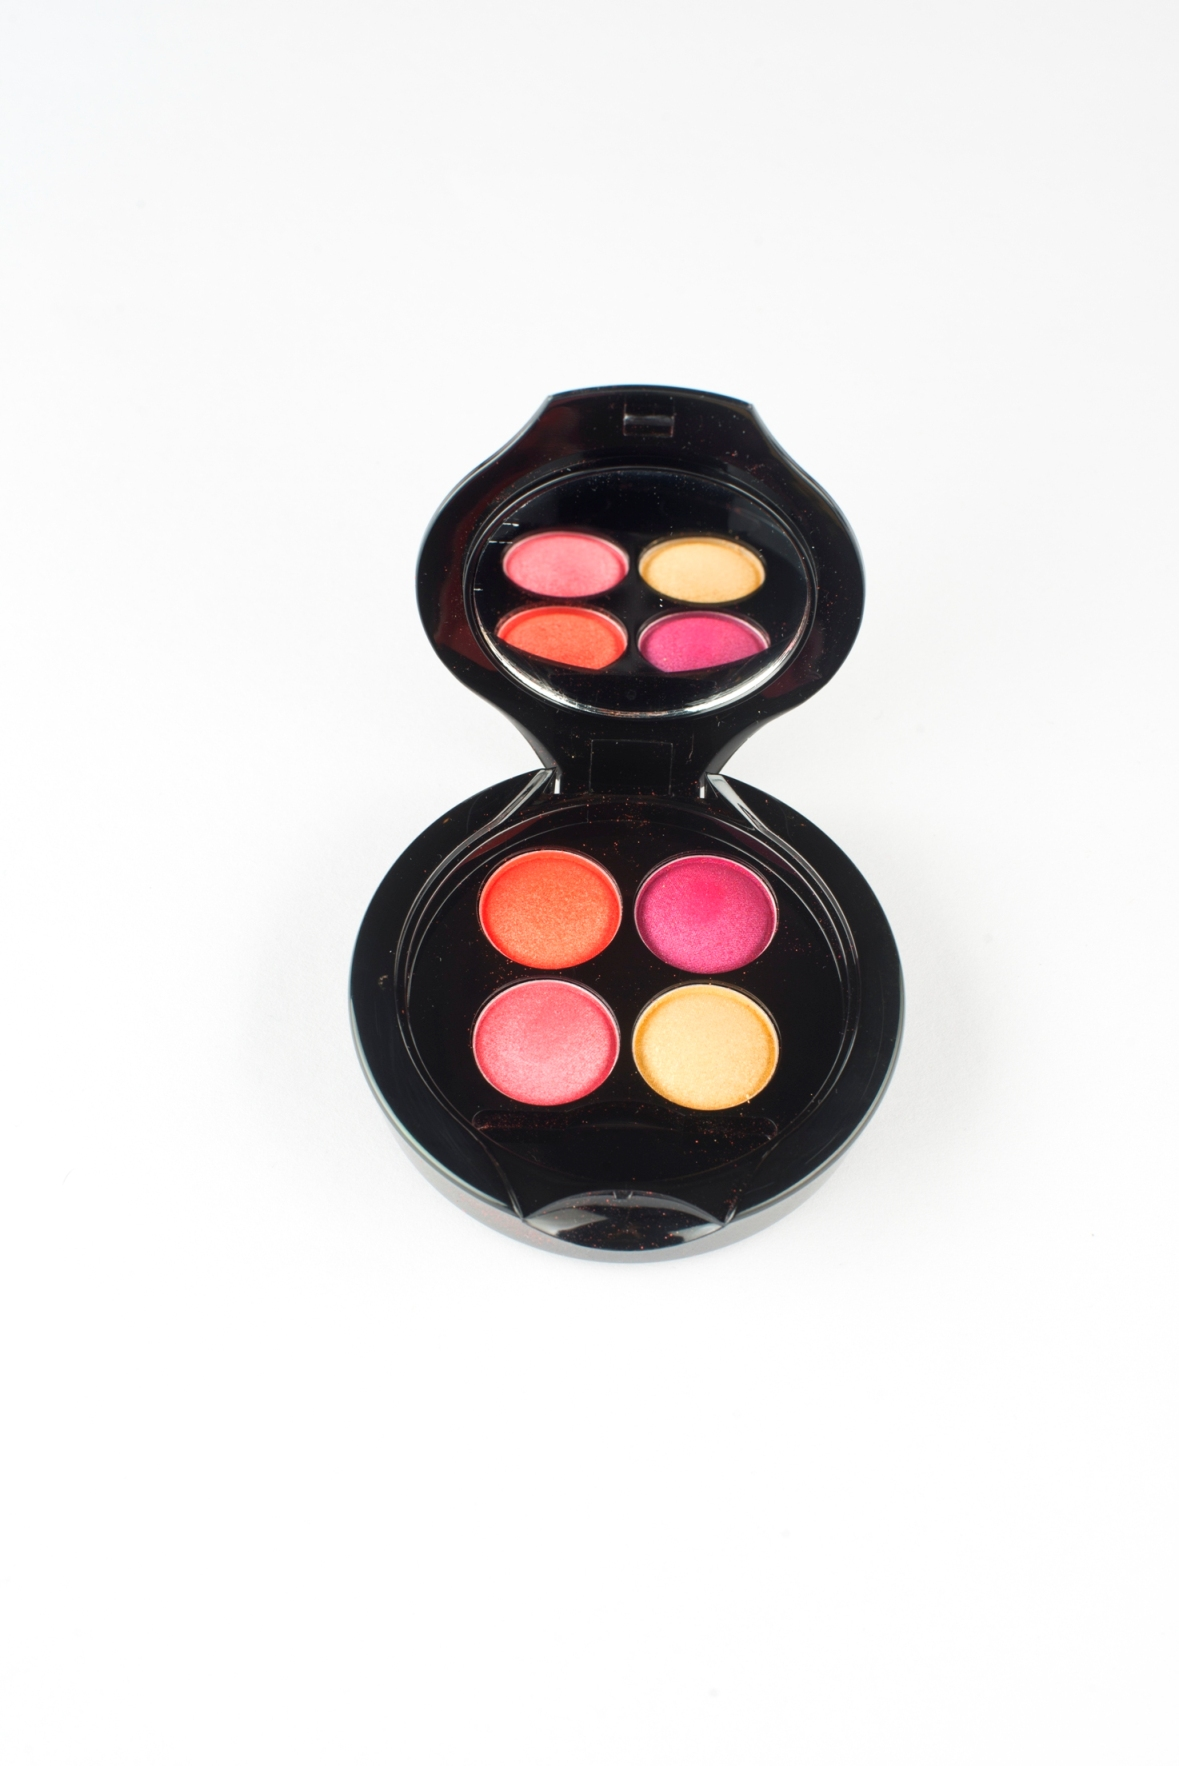 FACES Glam On Color Perfect Eyeshadow- Fascinate